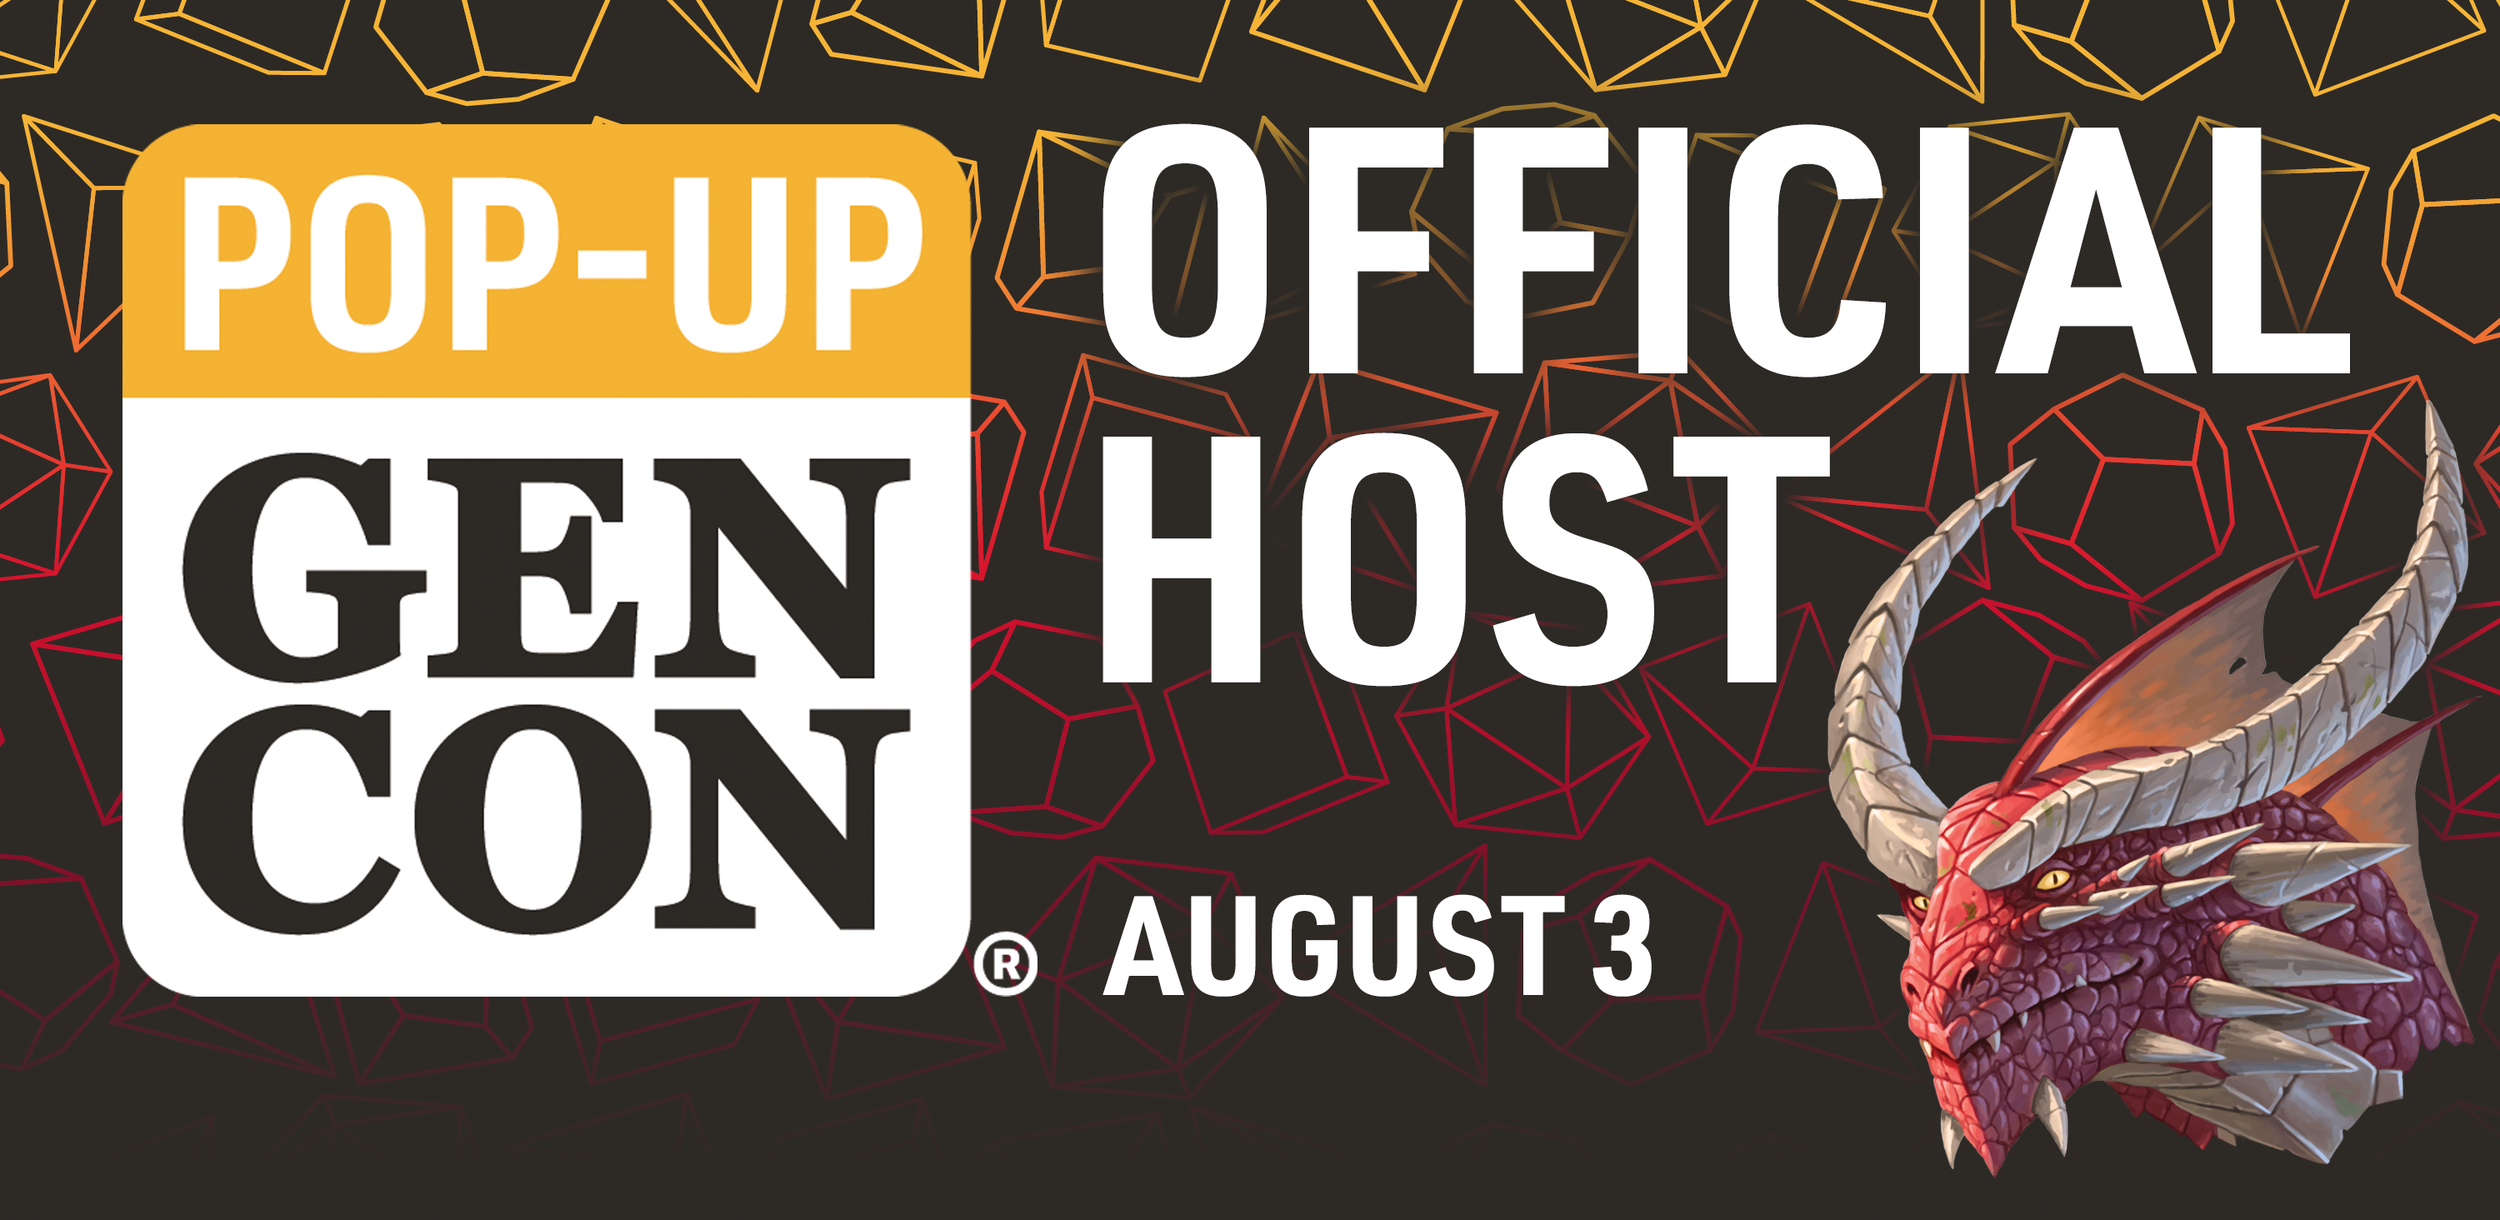 PopUpGenCon_FB_Aug3_Banner.png